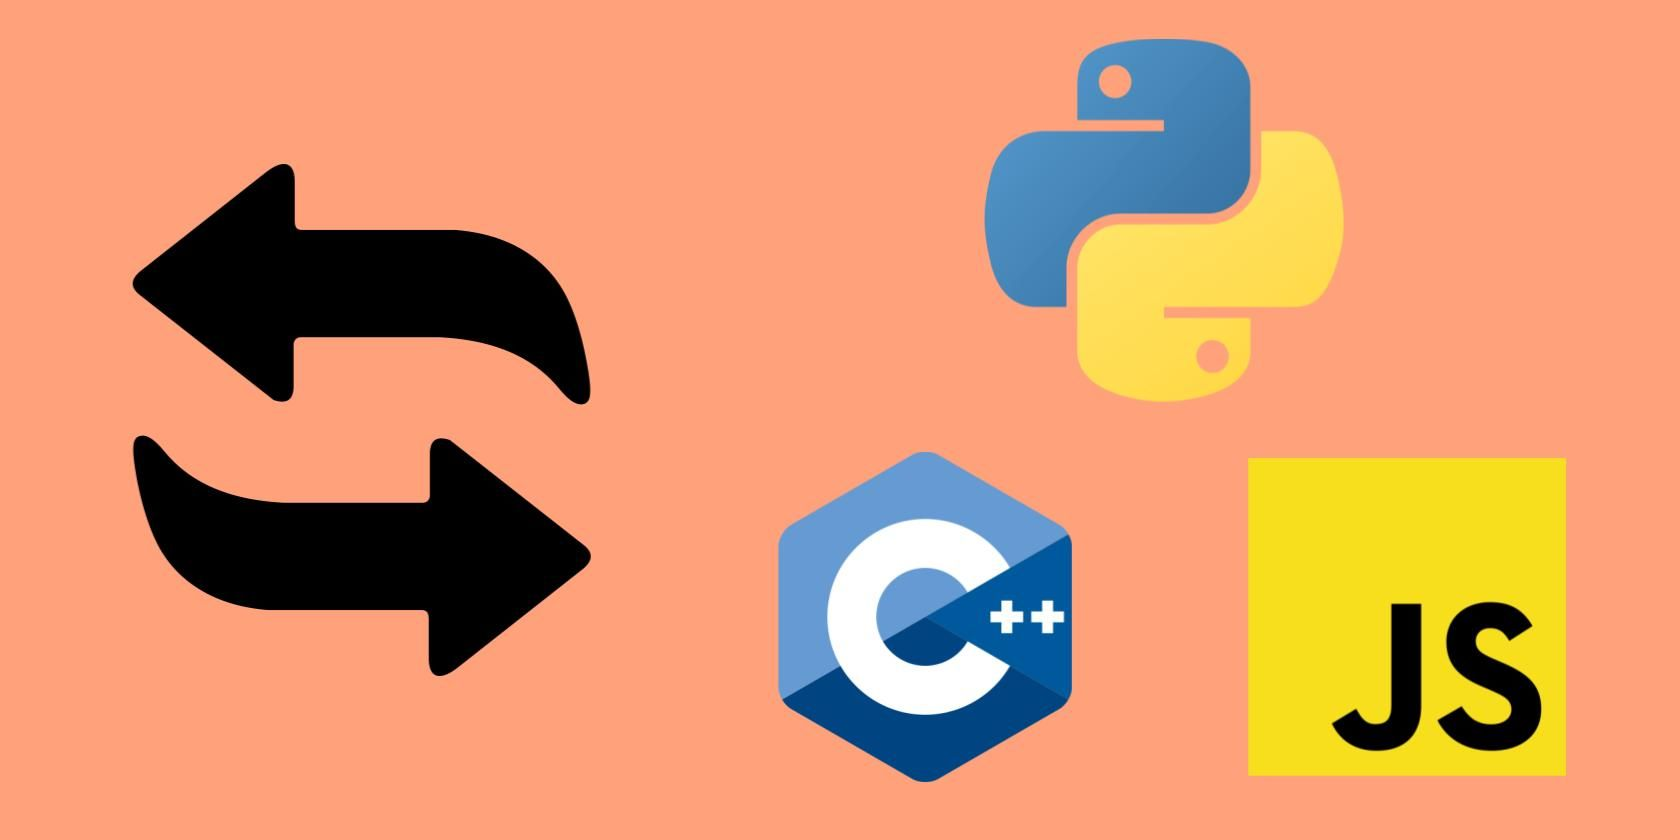 How to Reverse a String in C++, Python, and JavaScript